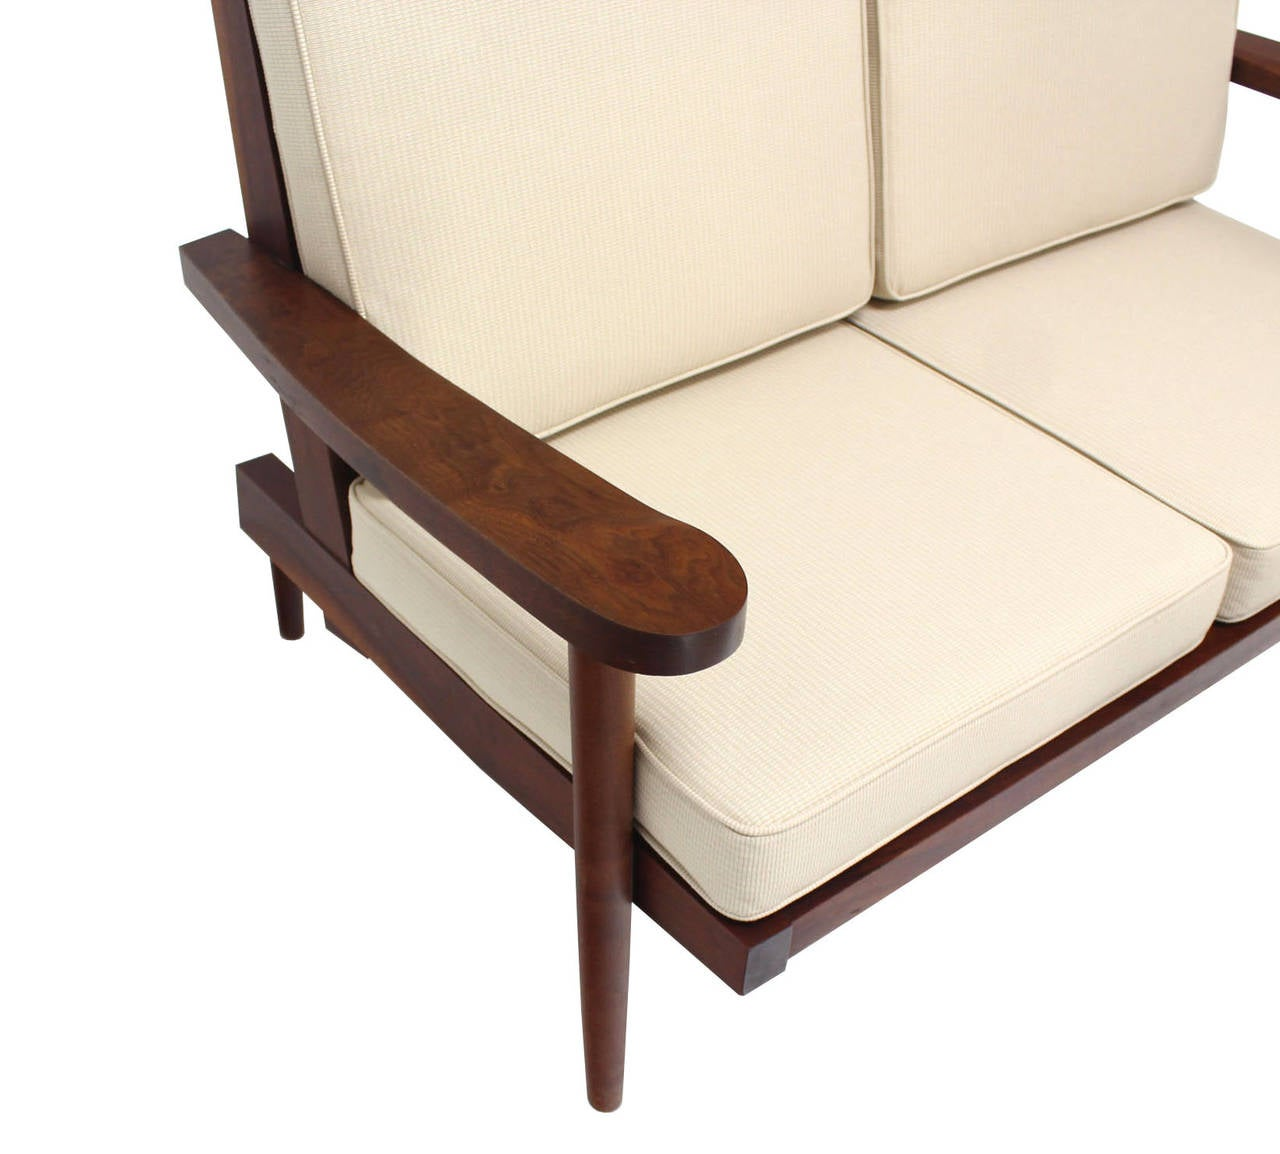 Pair of George Nakashima Style Walnut Settees with Arms New Upholstery In Excellent Condition For Sale In Rockaway, NJ